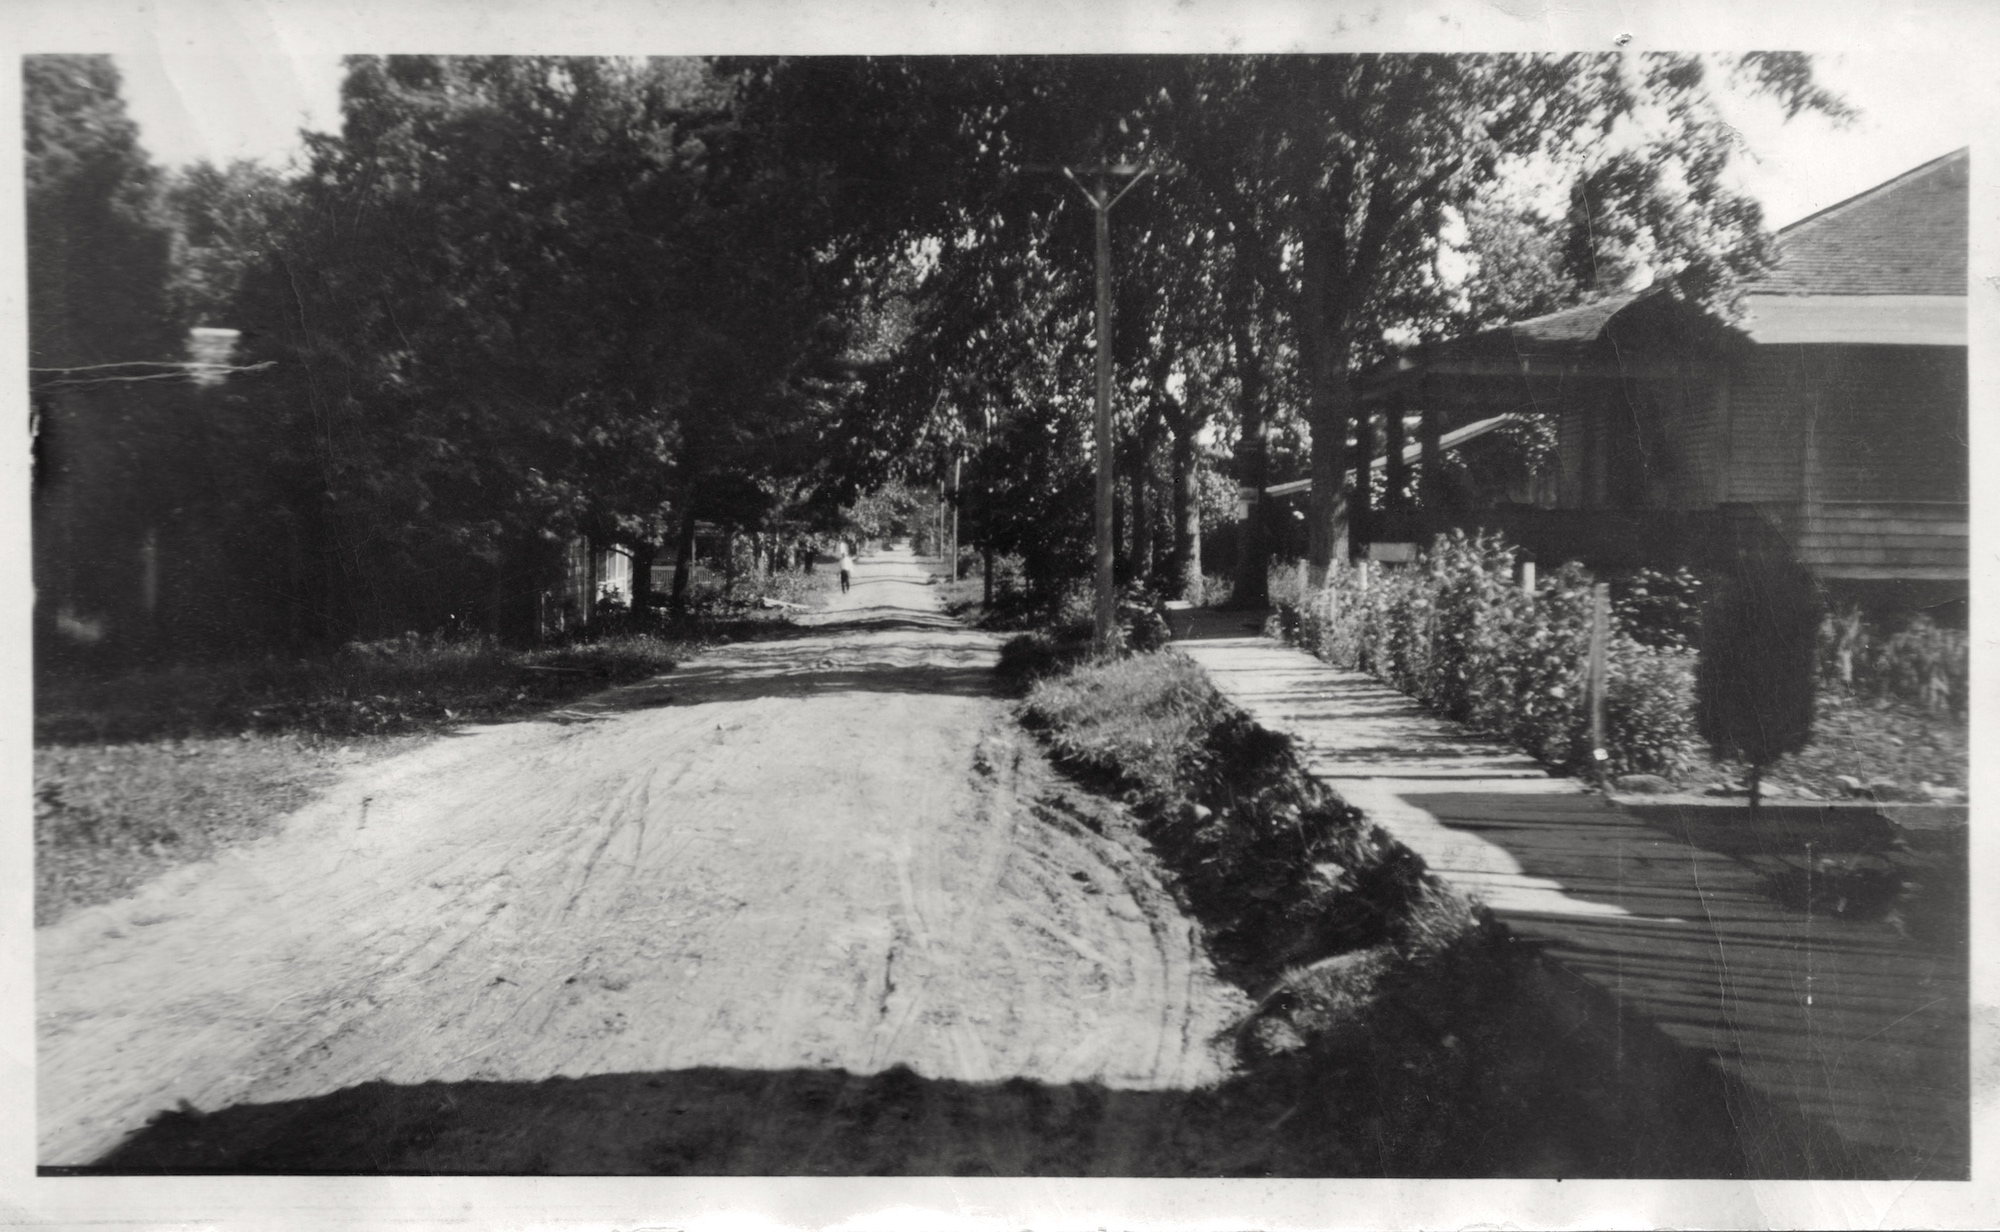 Cleverdale Road, Cleverdale, NY  circa 1930